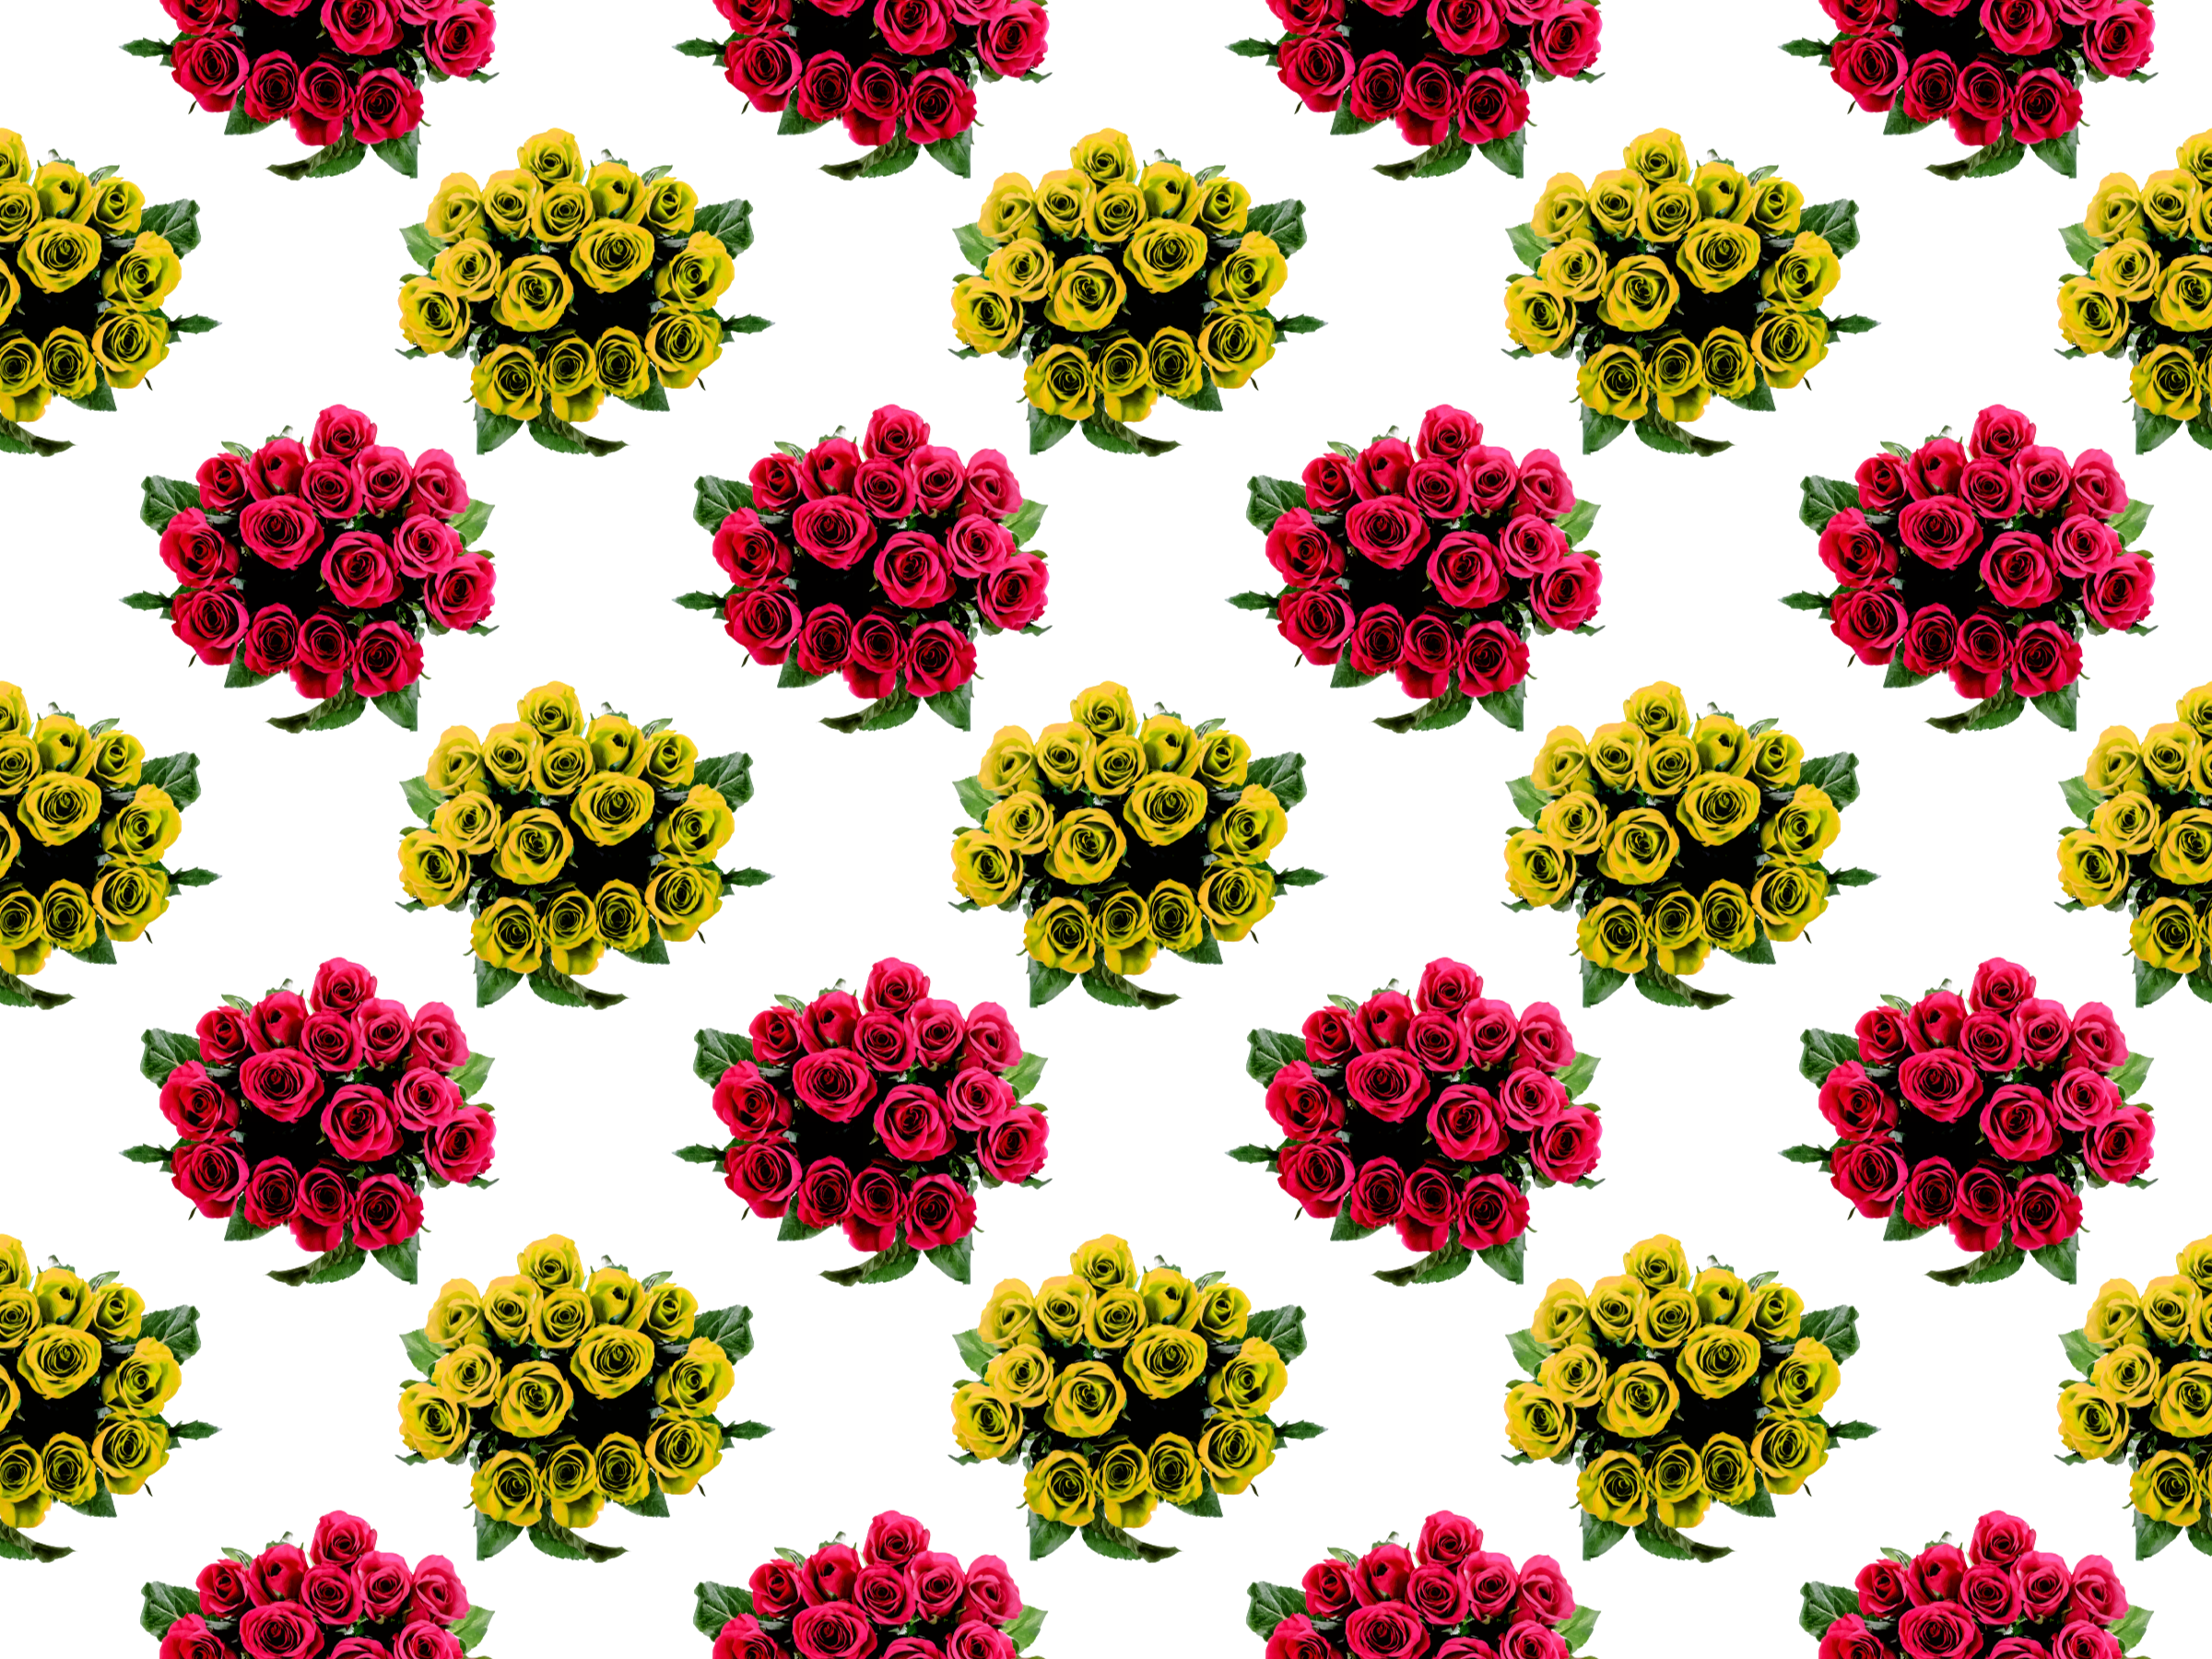 Roses pattern 2 by Firkin